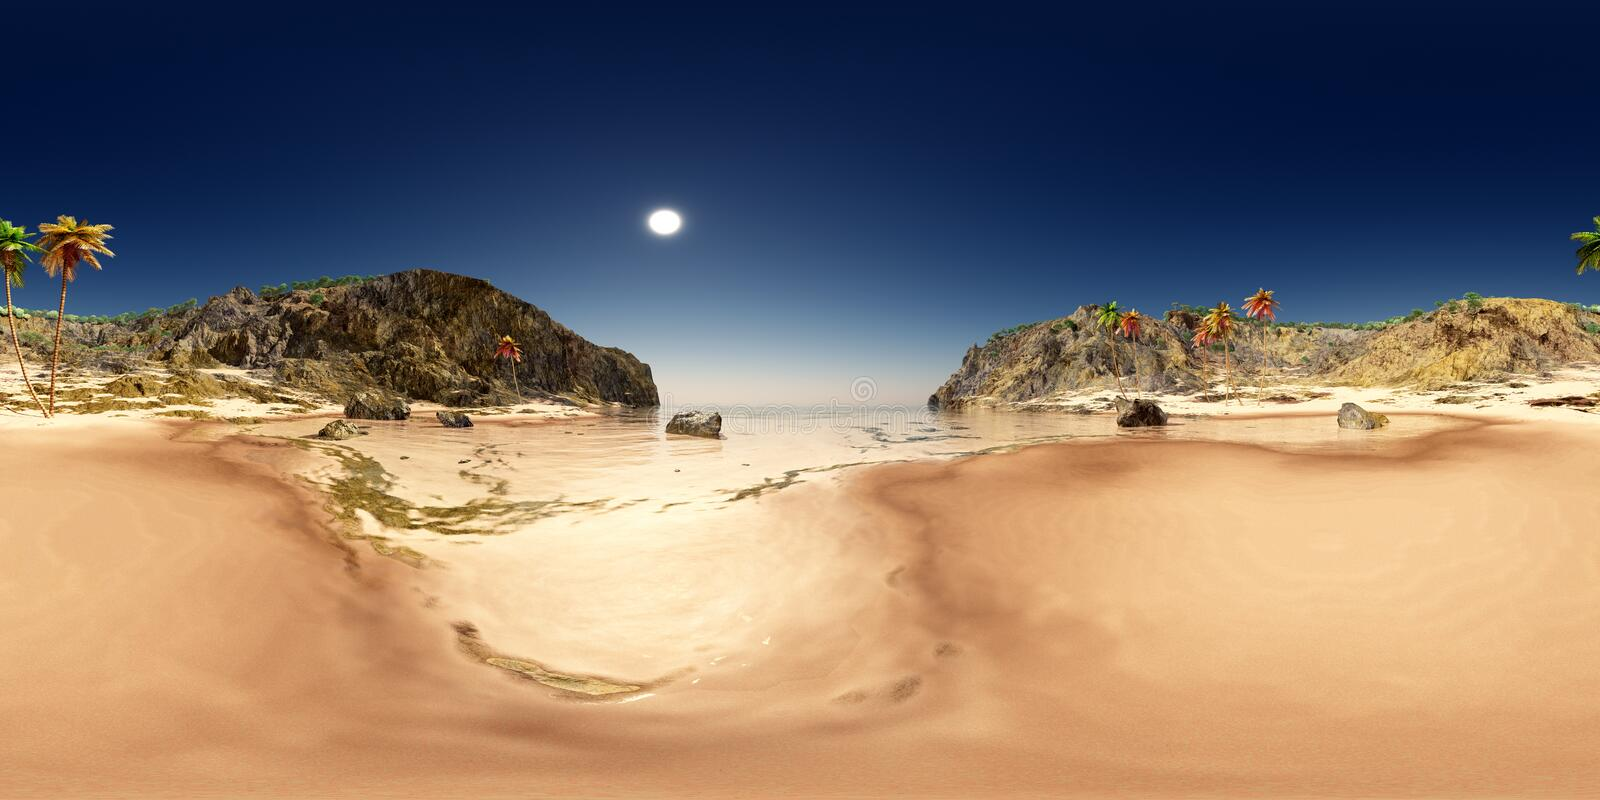 Download Spherical 360 Degrees Seamless Panorama With A Coastal Landscape Stock Illustration - Illustration of sand, travel: 107001997